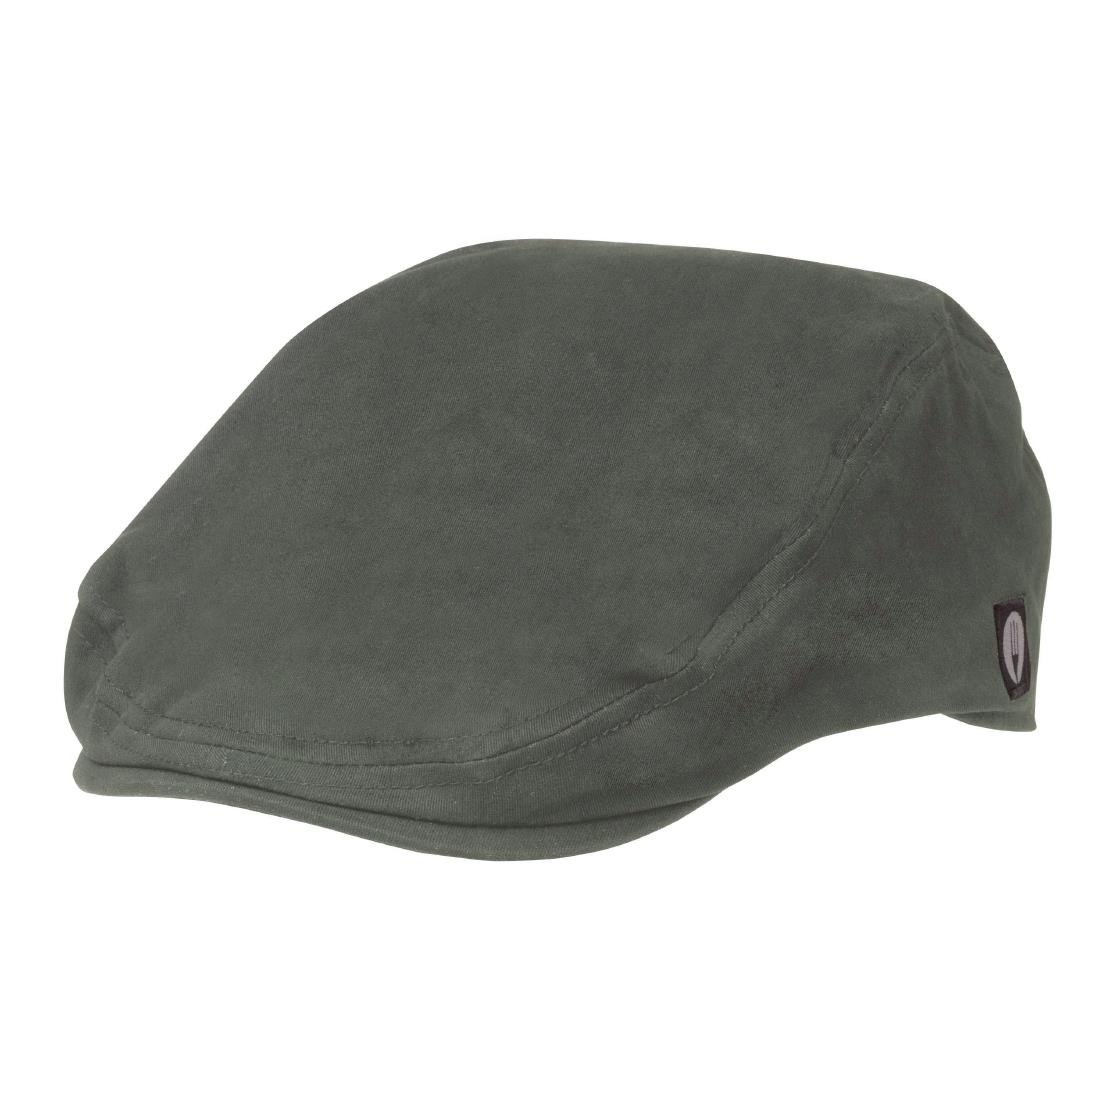 Image of Chef Works Flat Cap Grey L